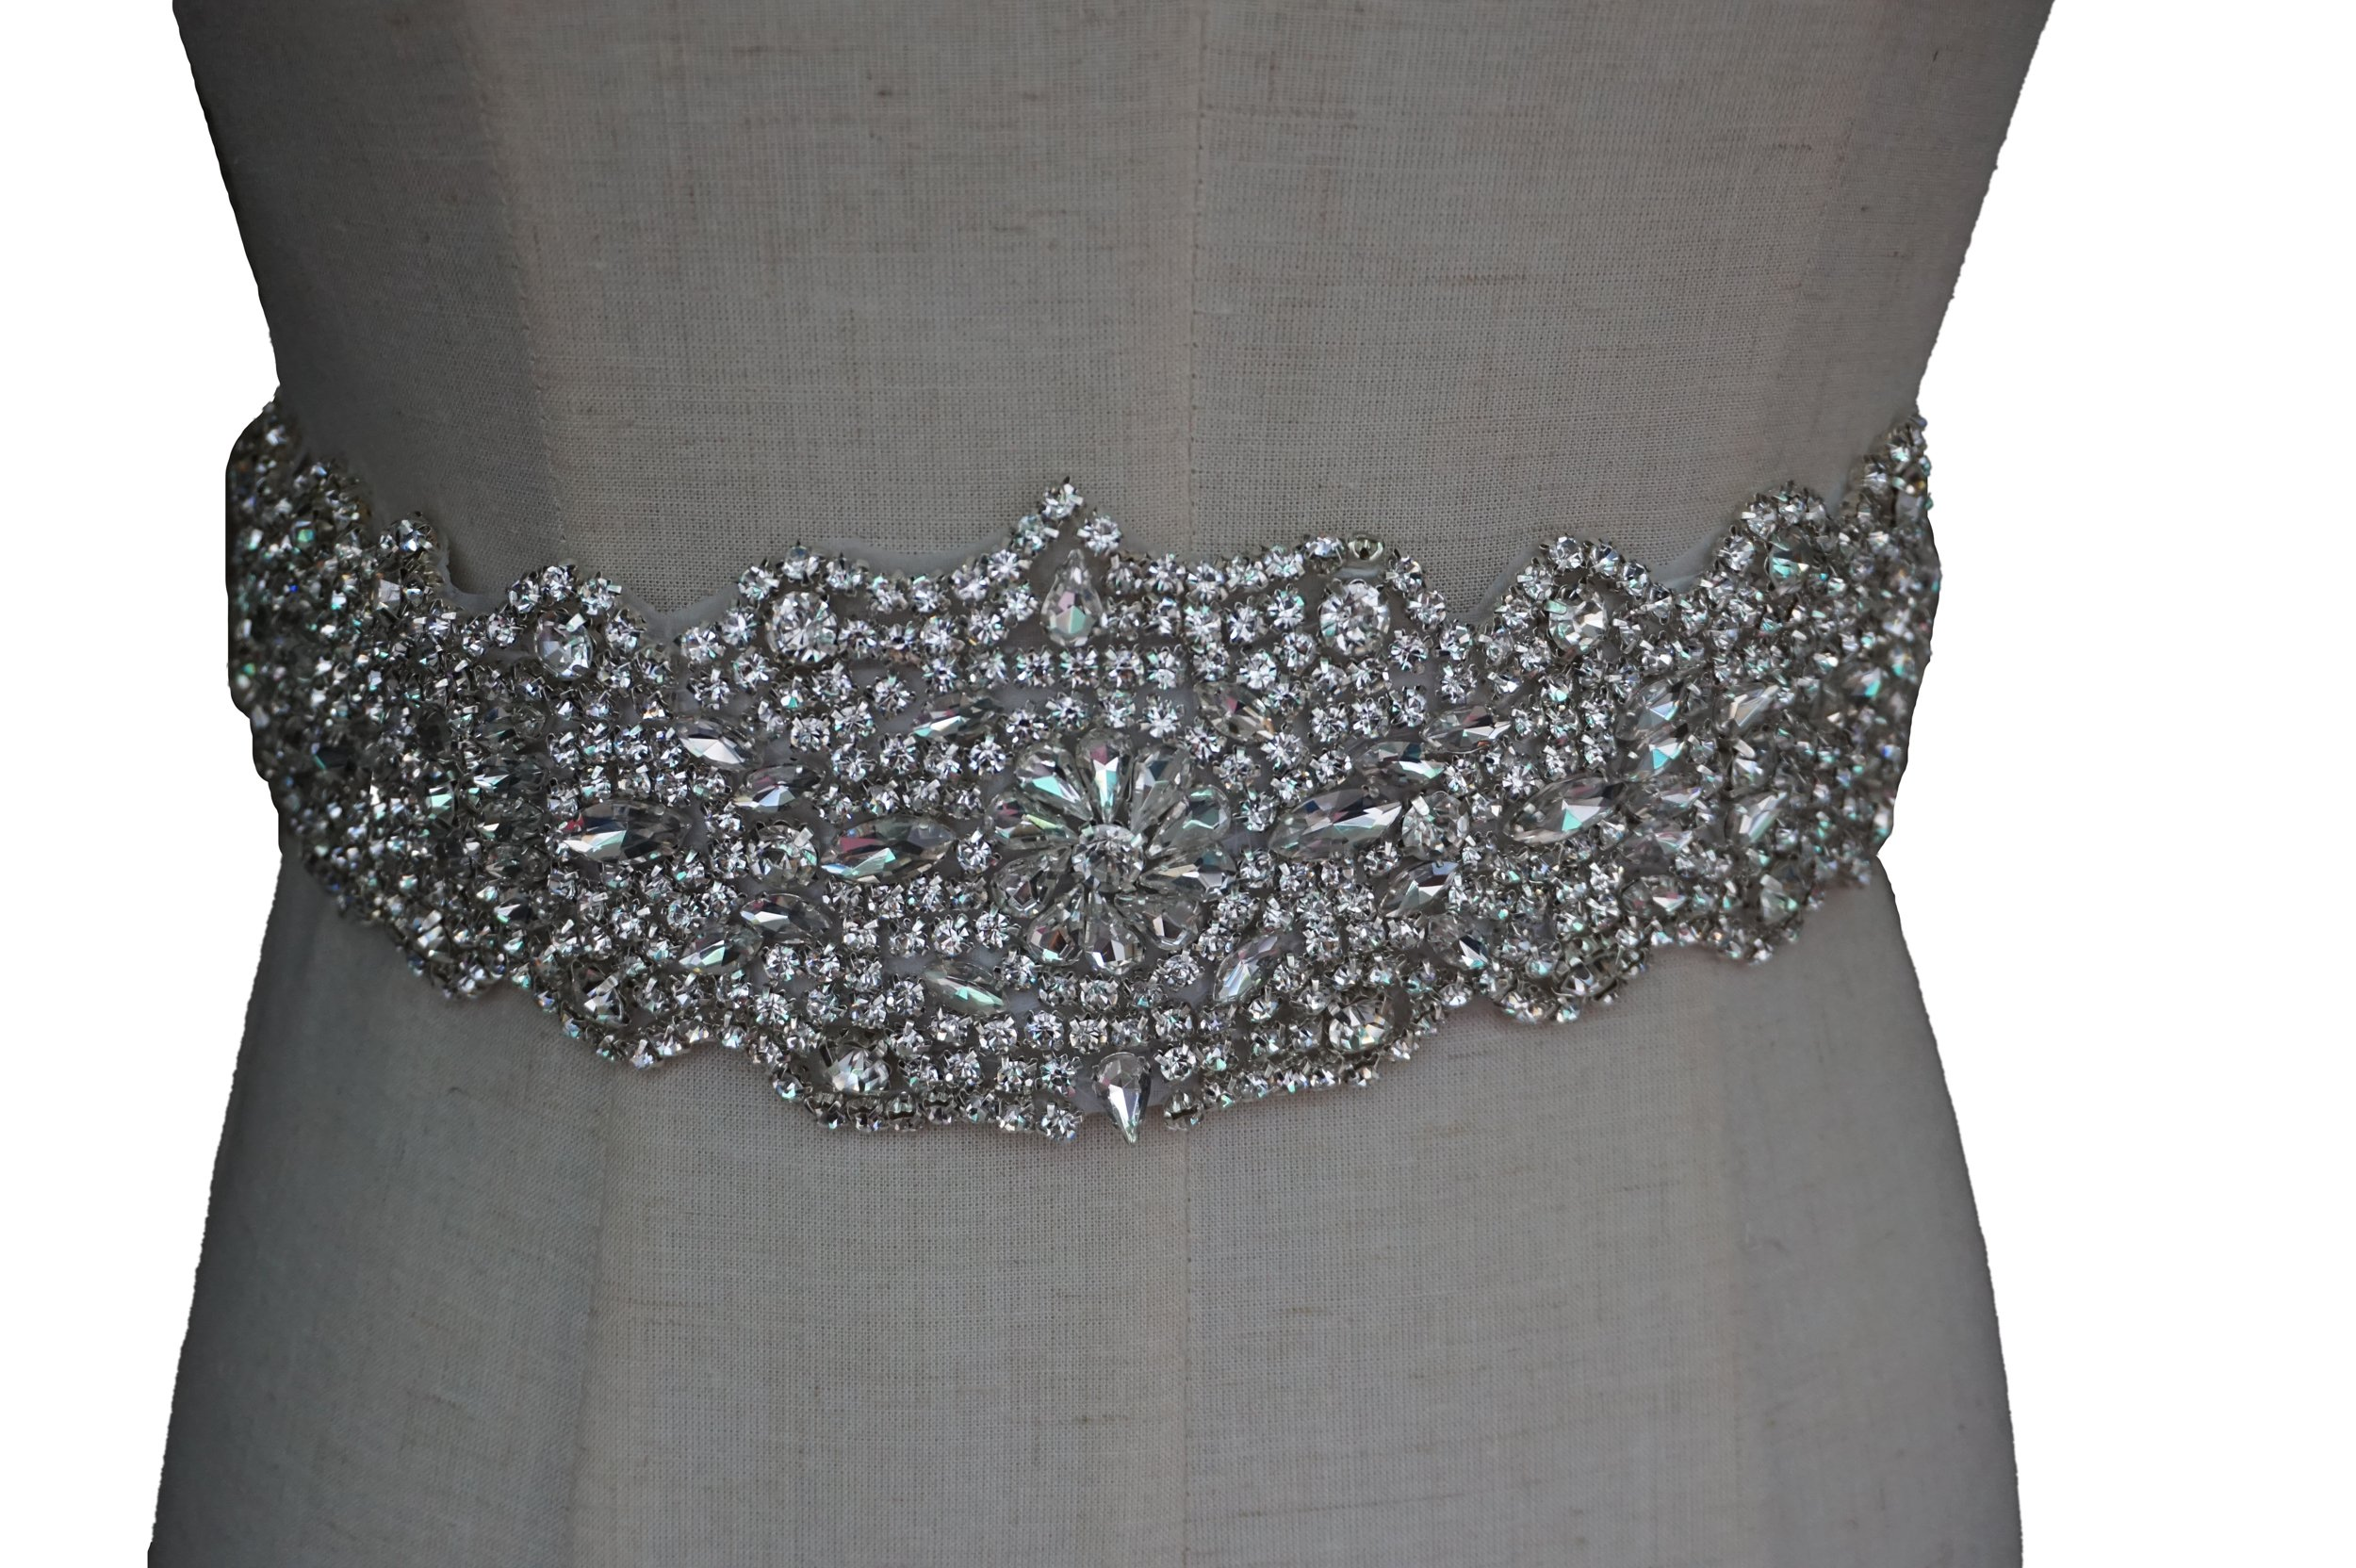 Meiysh Vintage Rhinestone Crystal Wedding Bridal Sash Belt,Off-White